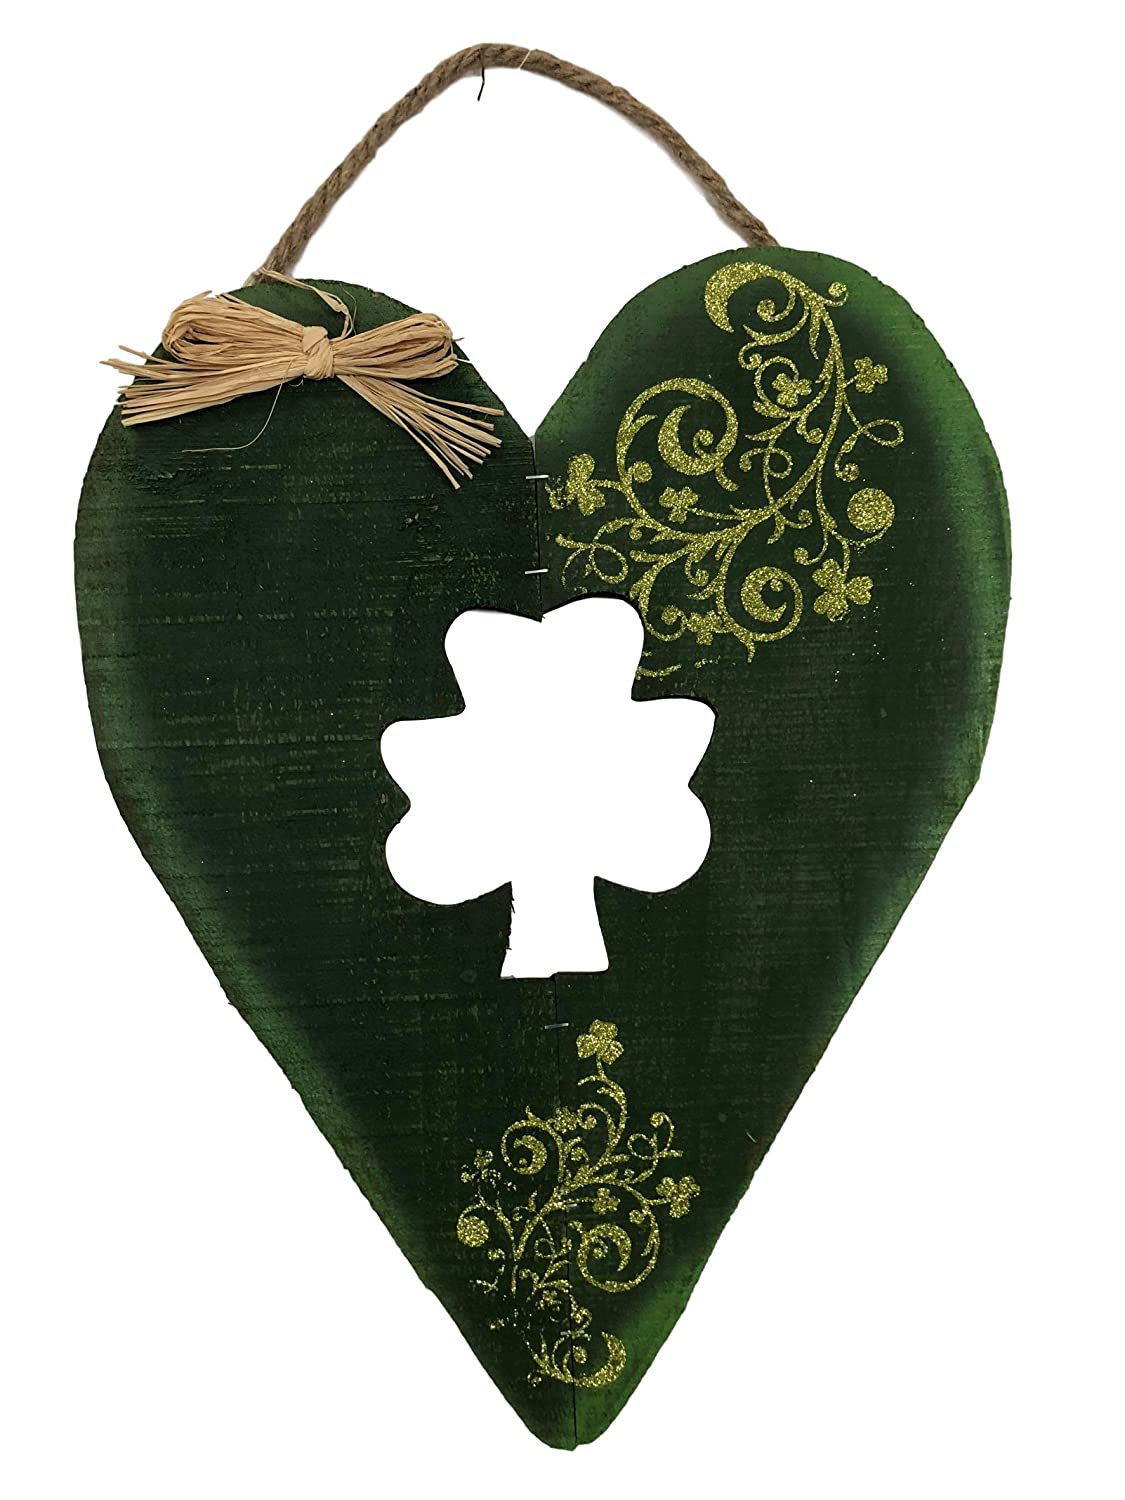 Patricks Day Welcome Sign with Raffia Bow 18 Nantucket H Green Shamrock Country Heart Slatted Wood St